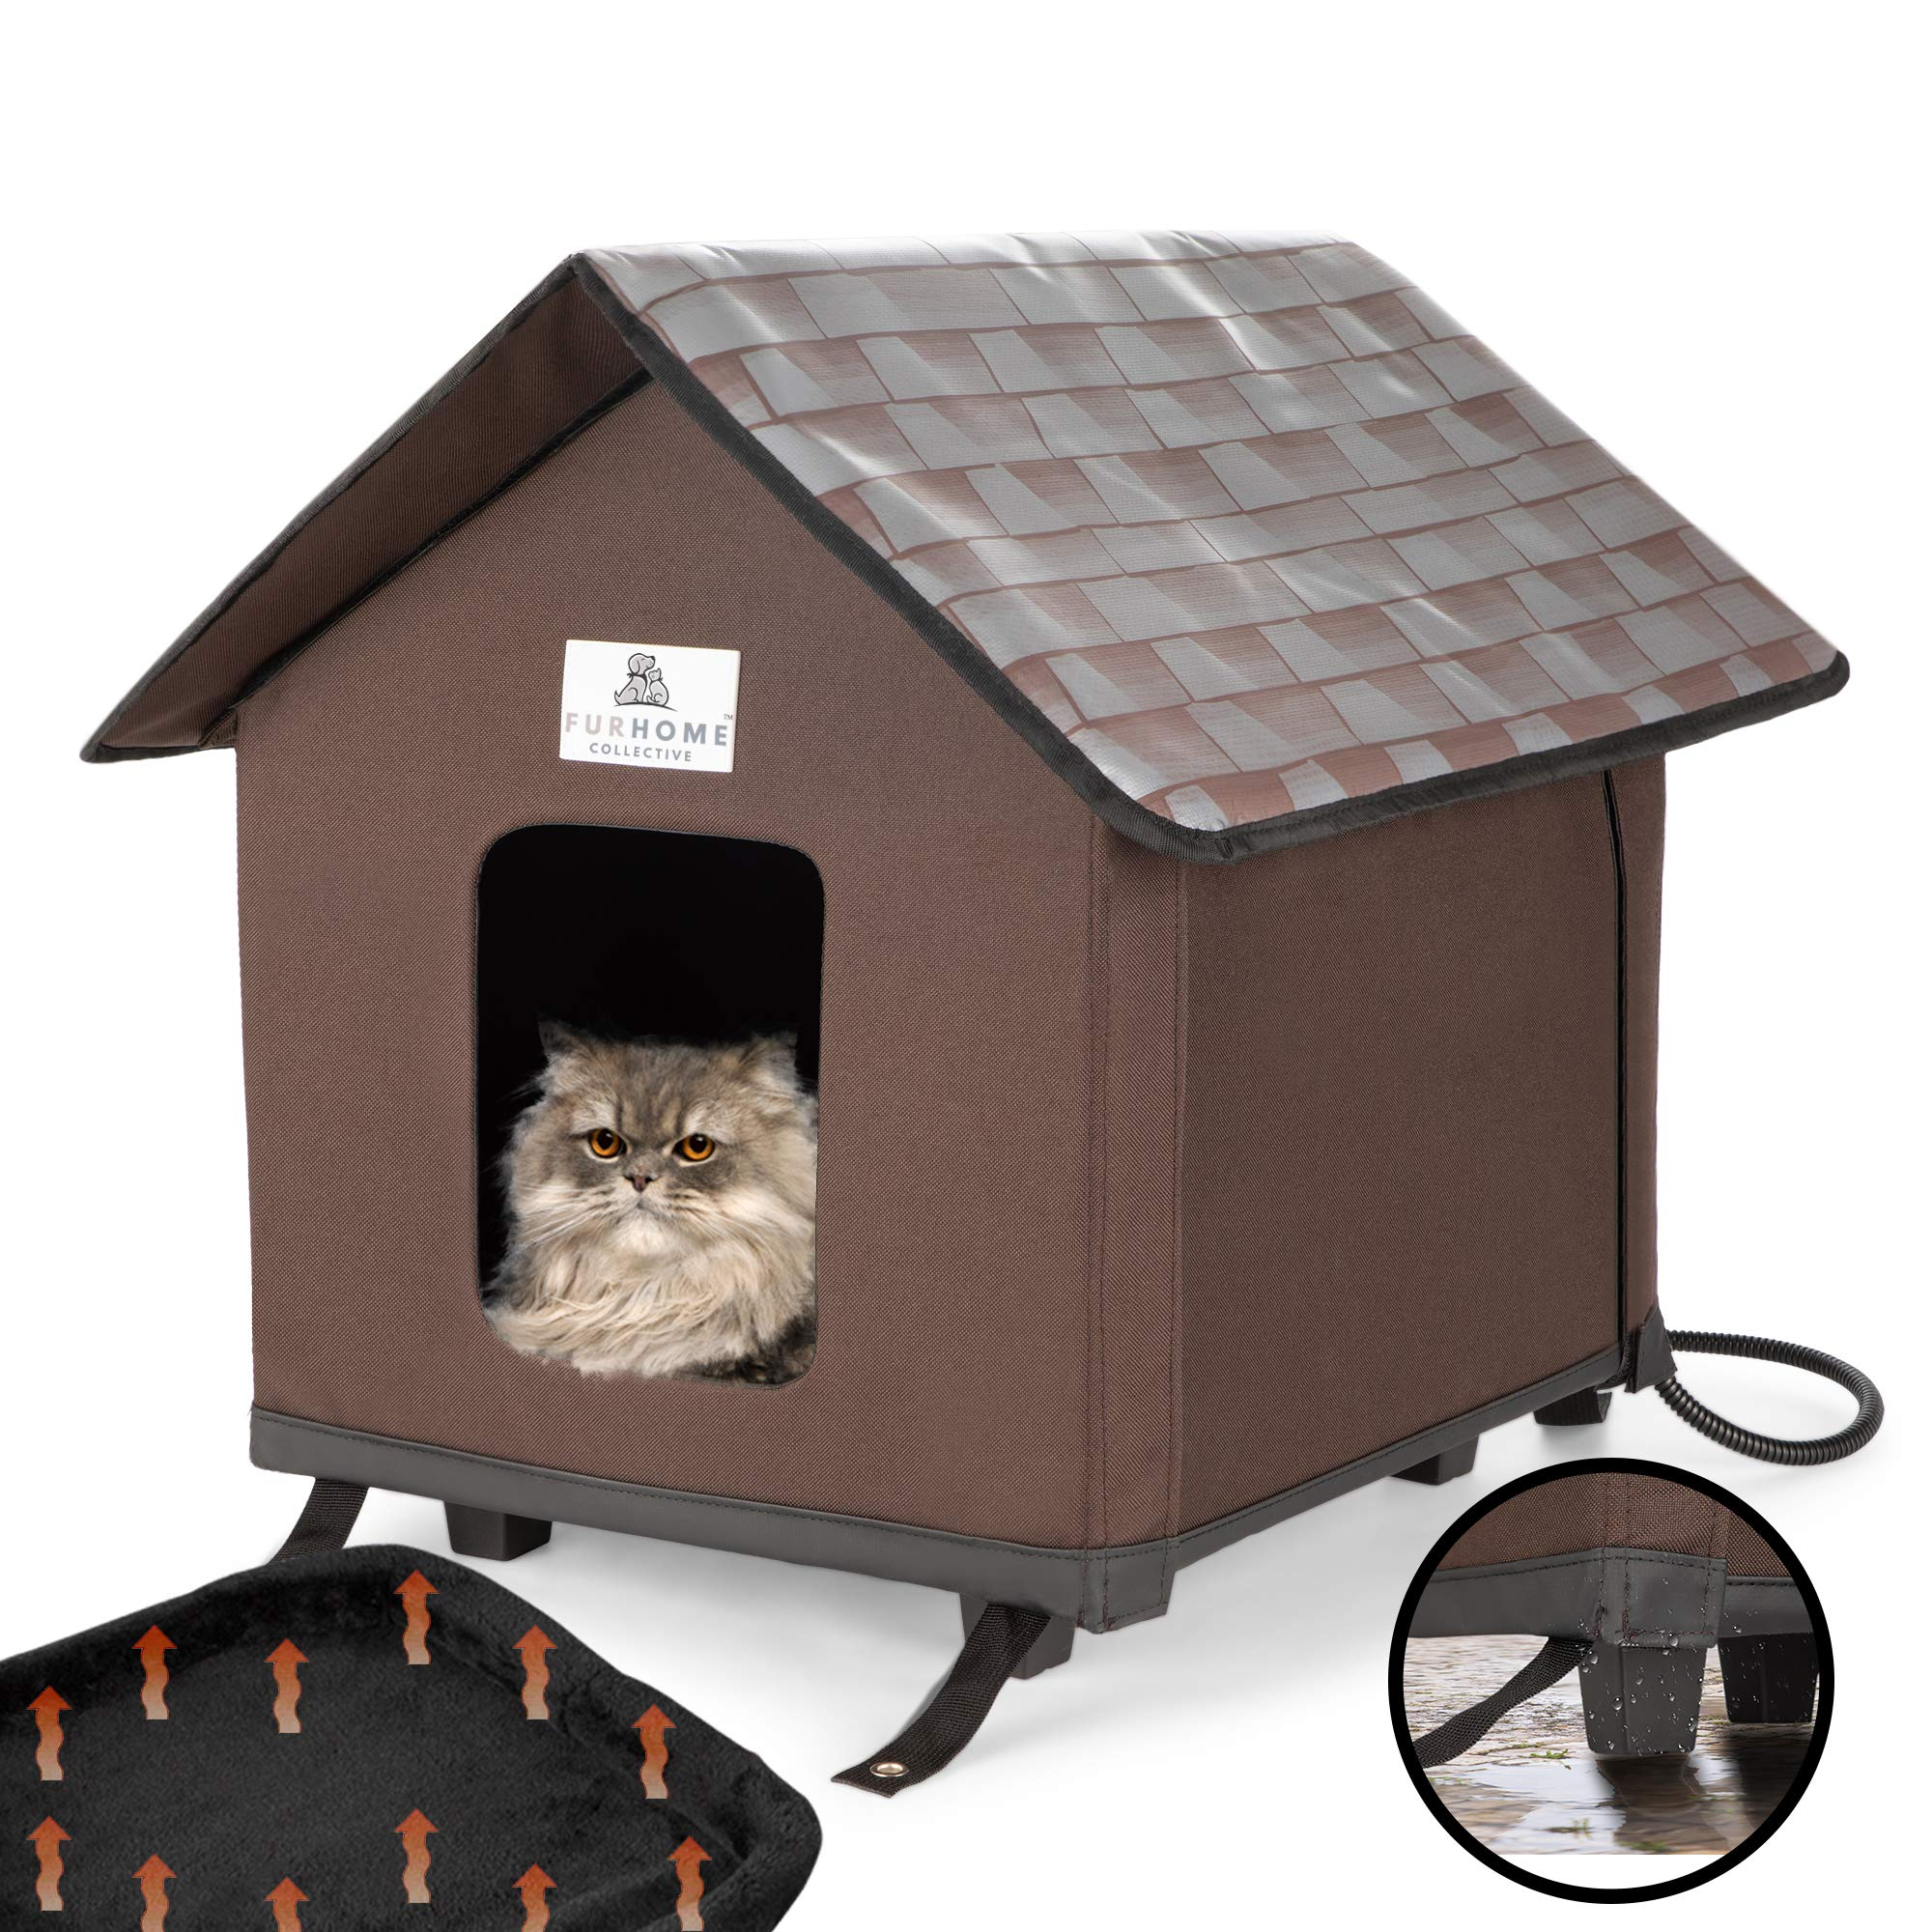 Furhome Collective Heated Cat Houses For Indoor Cats Elevated Waterproof And Insulated A Safe Pet House And Kitty Shelter For Your Cat Or Small Dog To Stay Warm Dry Buy